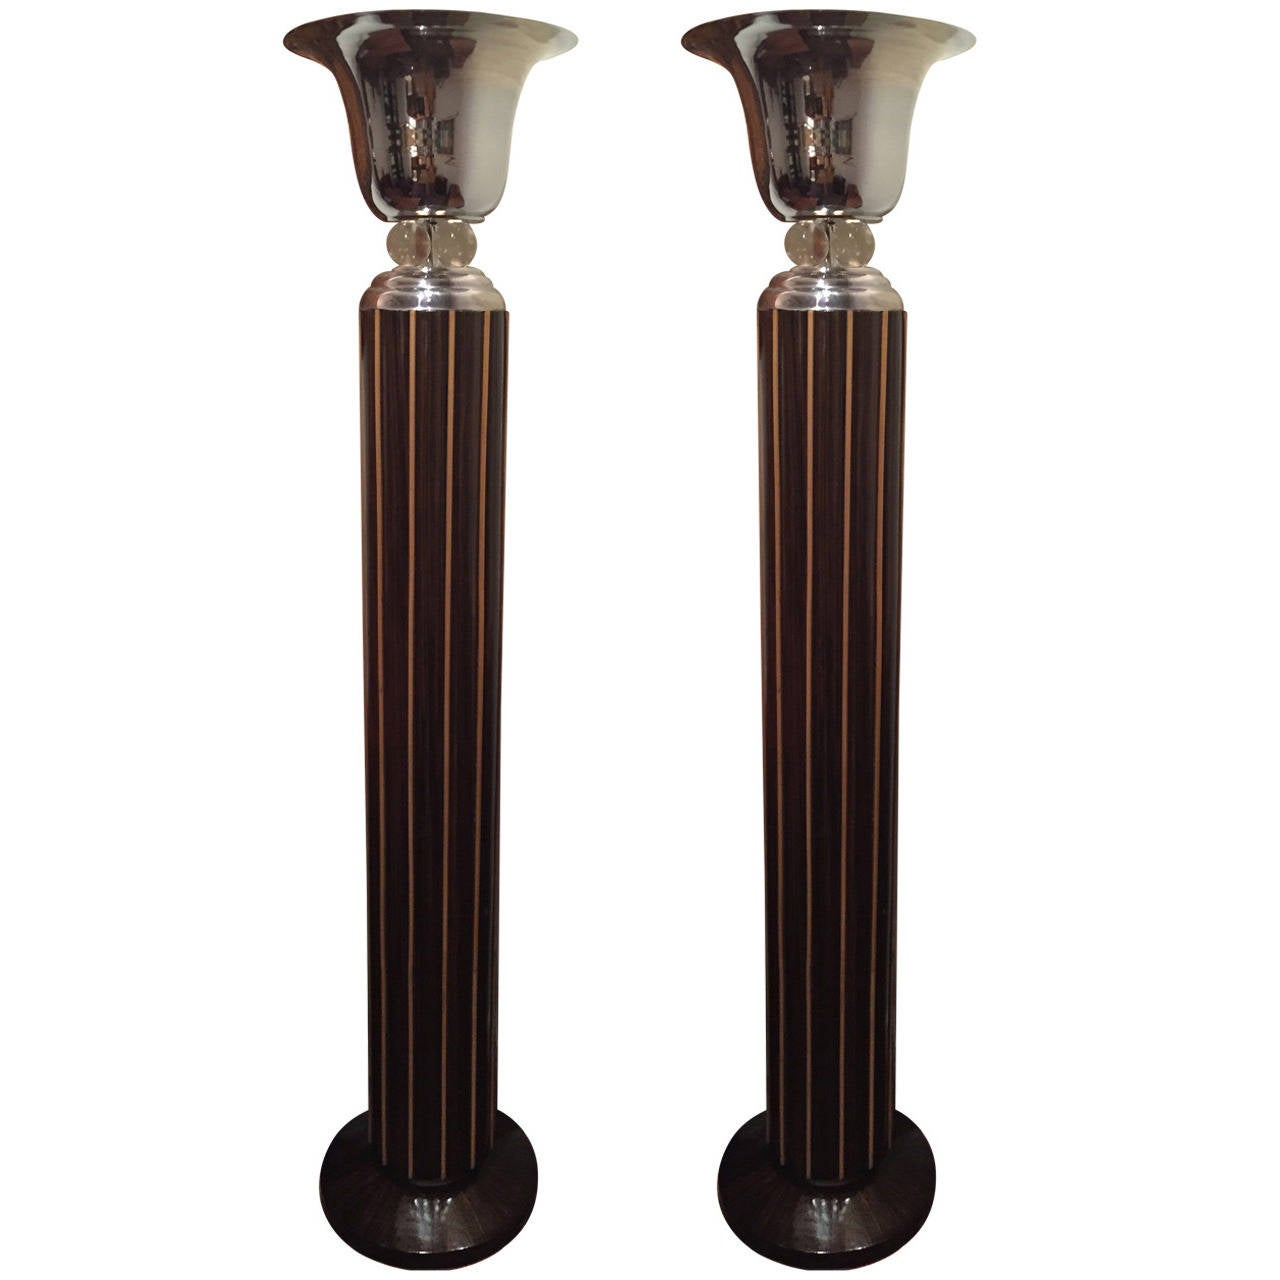 spectacular art deco floor lamps in two tone wood at 1stdibs. Black Bedroom Furniture Sets. Home Design Ideas